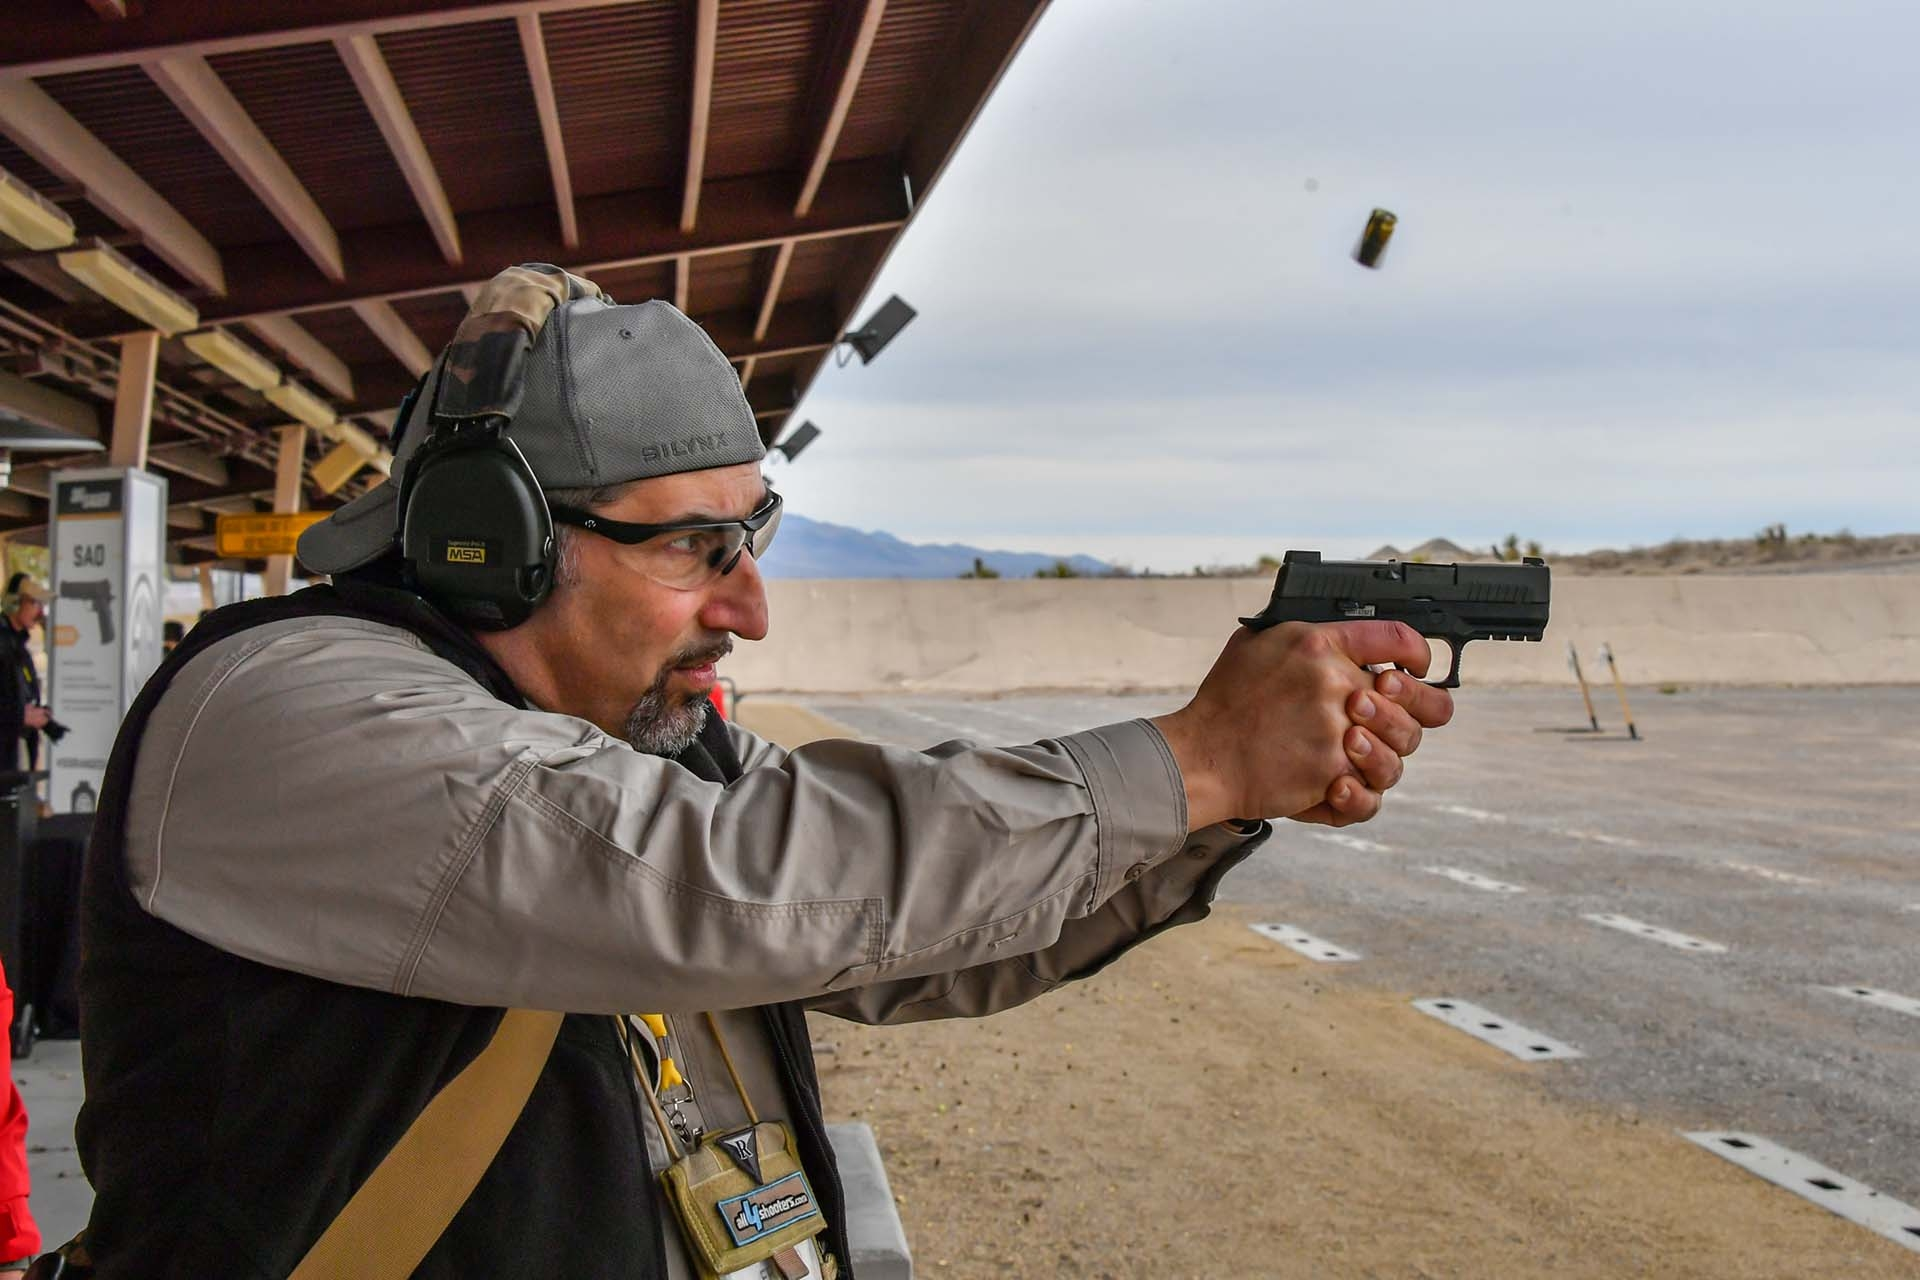 Shooting the SIG Sauer P320 X-compact pistol at the SIG Premier Media Day event